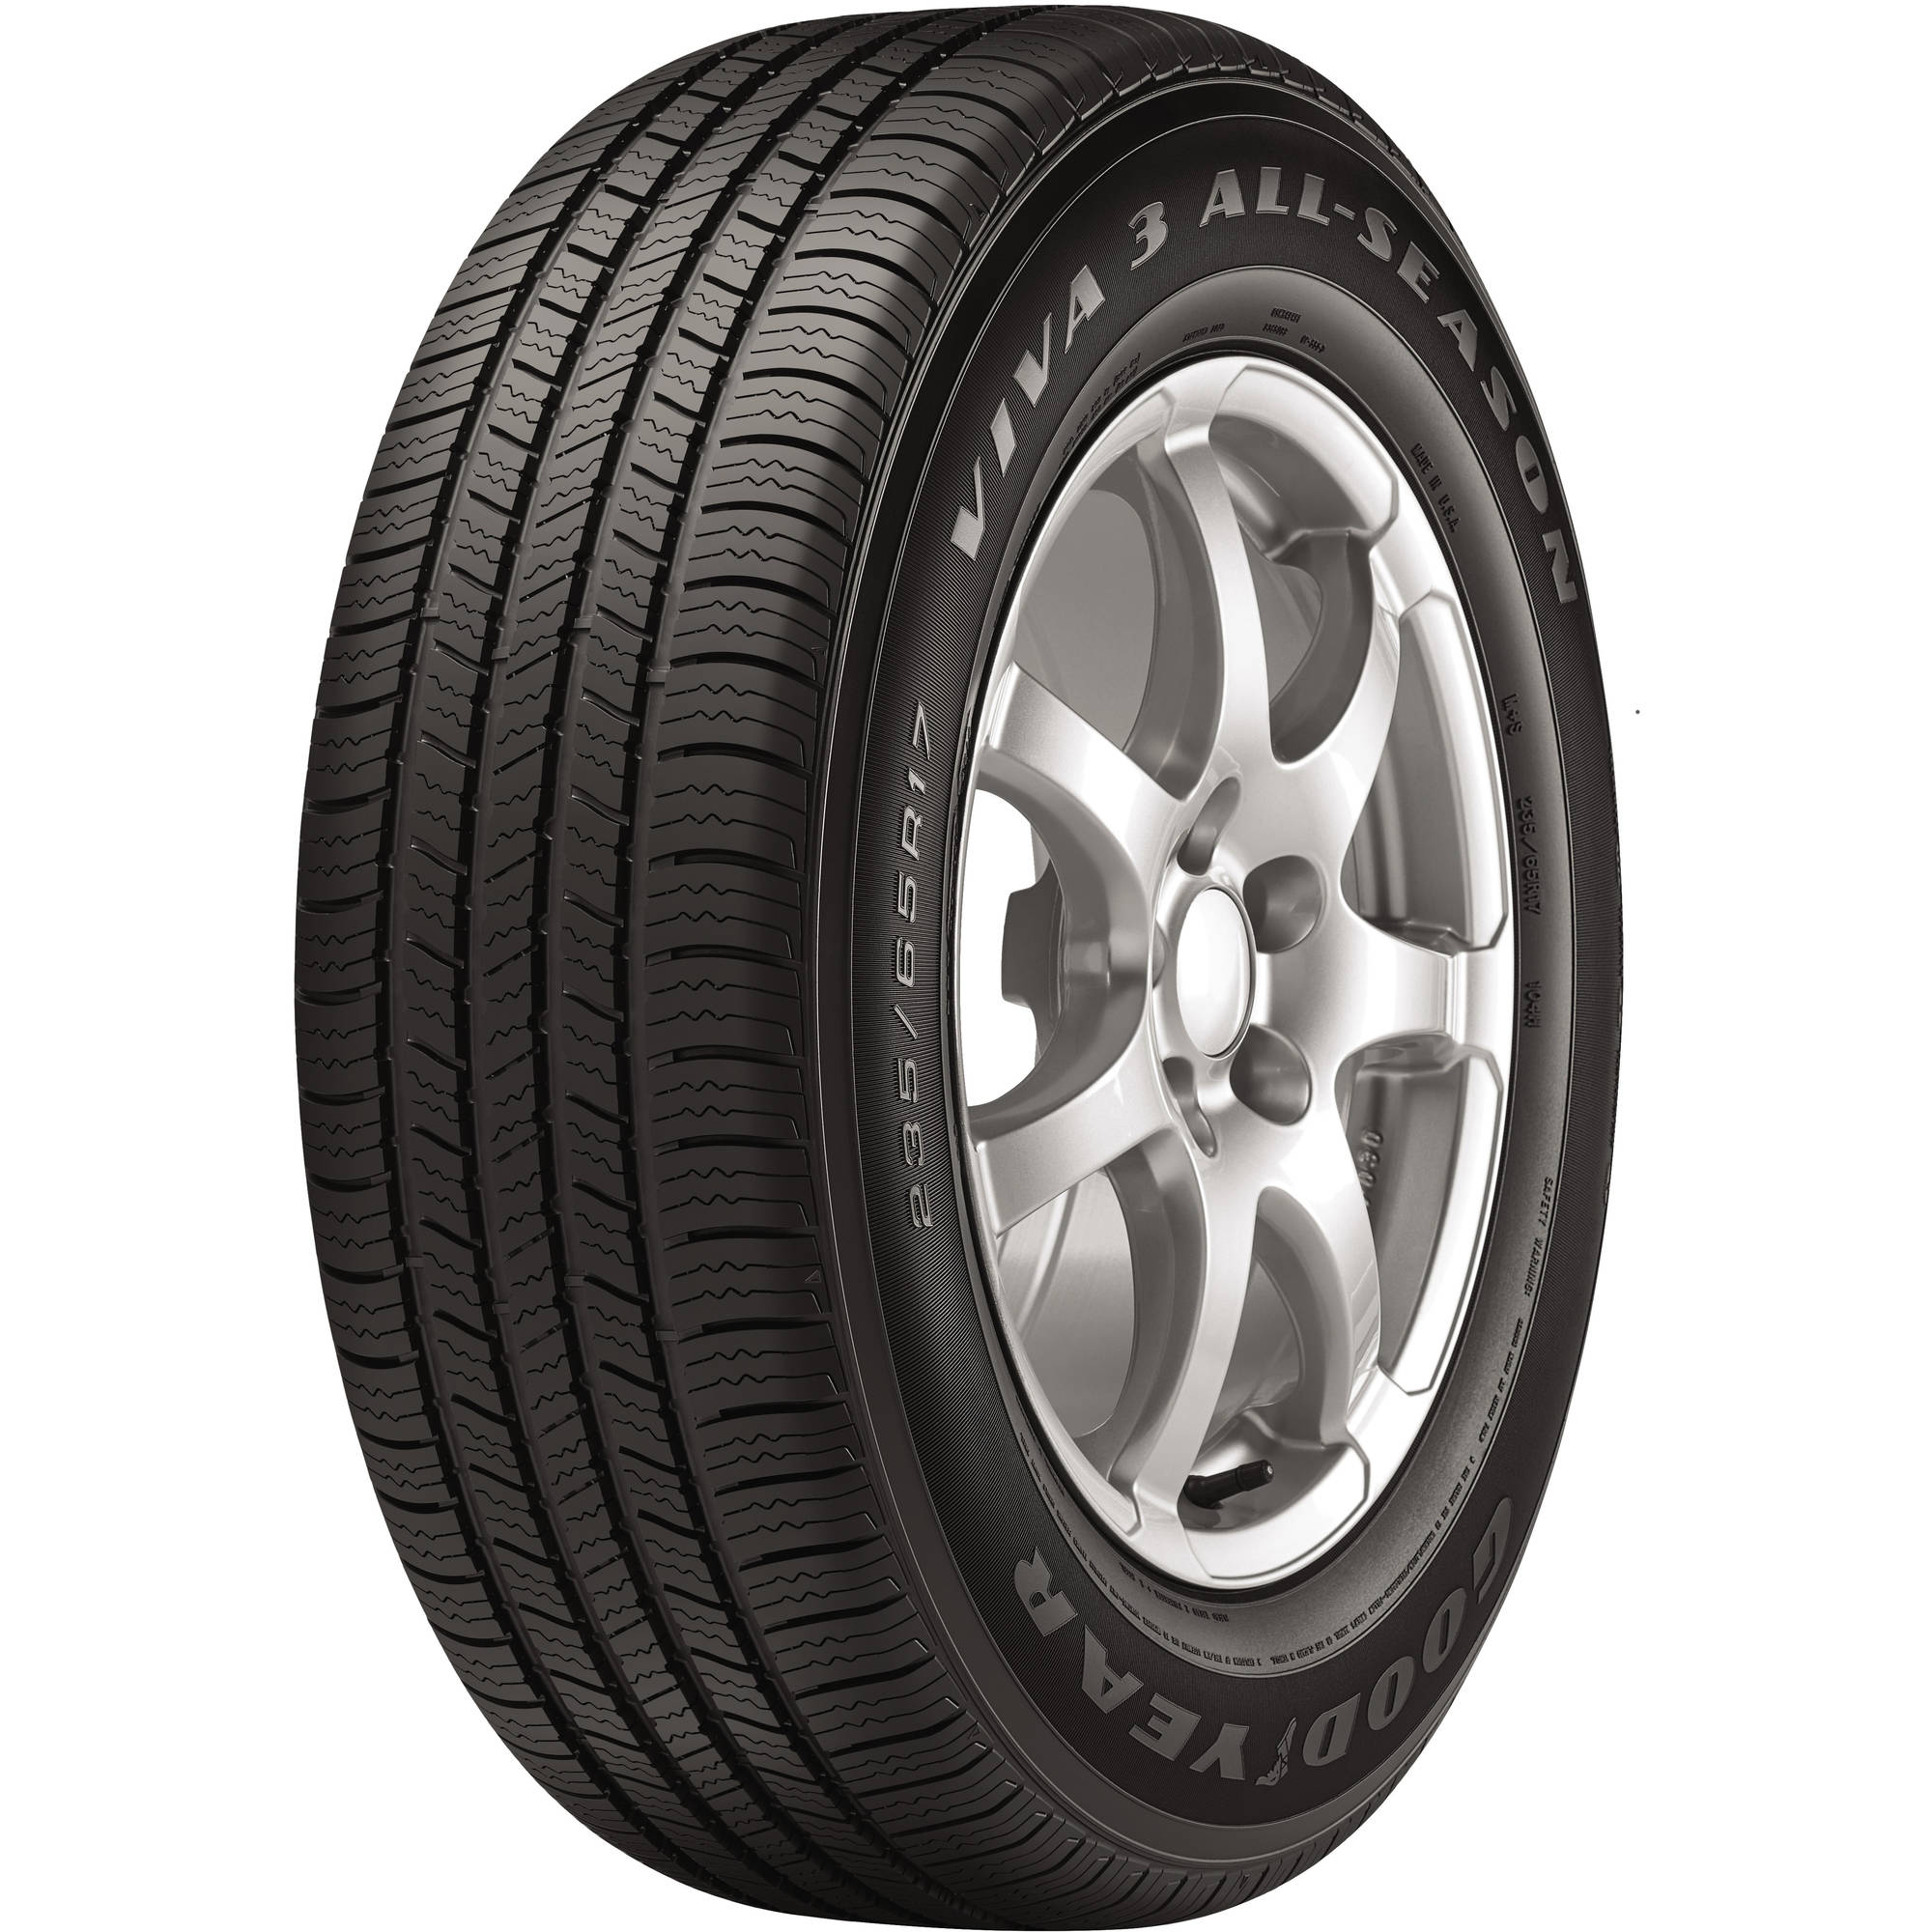 What Time Does Discount Tire Close >> Goodyear Viva 3 All-Season Tire 205/65R16 95H - Walmart.com